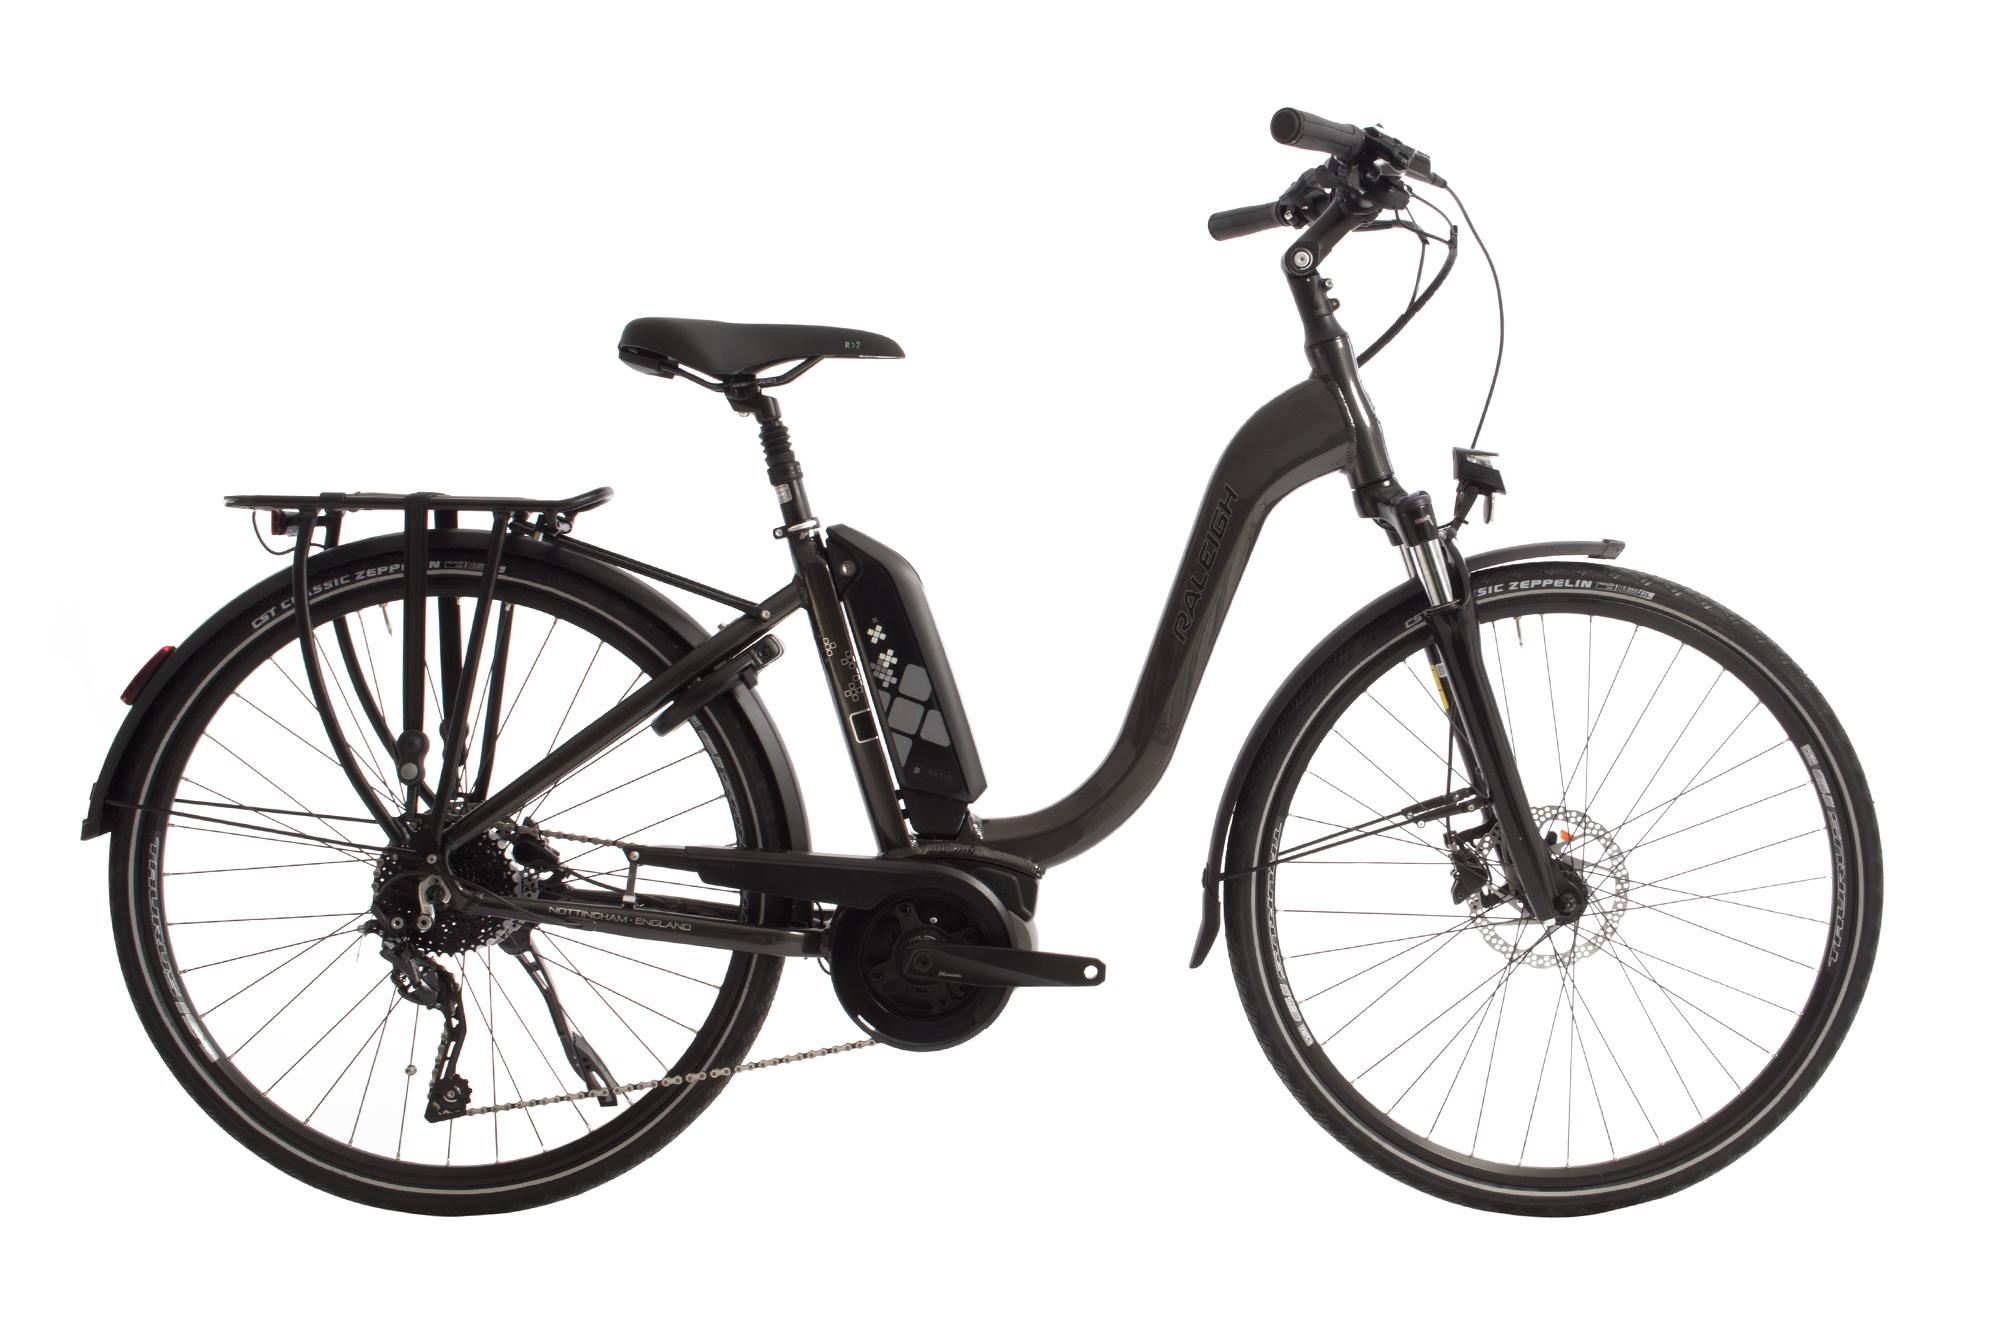 Raleigh - E-bikes starting from £1,100, and in various styles and colours. If you are considering an E-bike and haven't tried one yet, give us a call and book in for a test ride and discover how amazing E-bikes are. Raleigh use only the best components, and with electric systems from the likes of Bosch they offer great value for money.